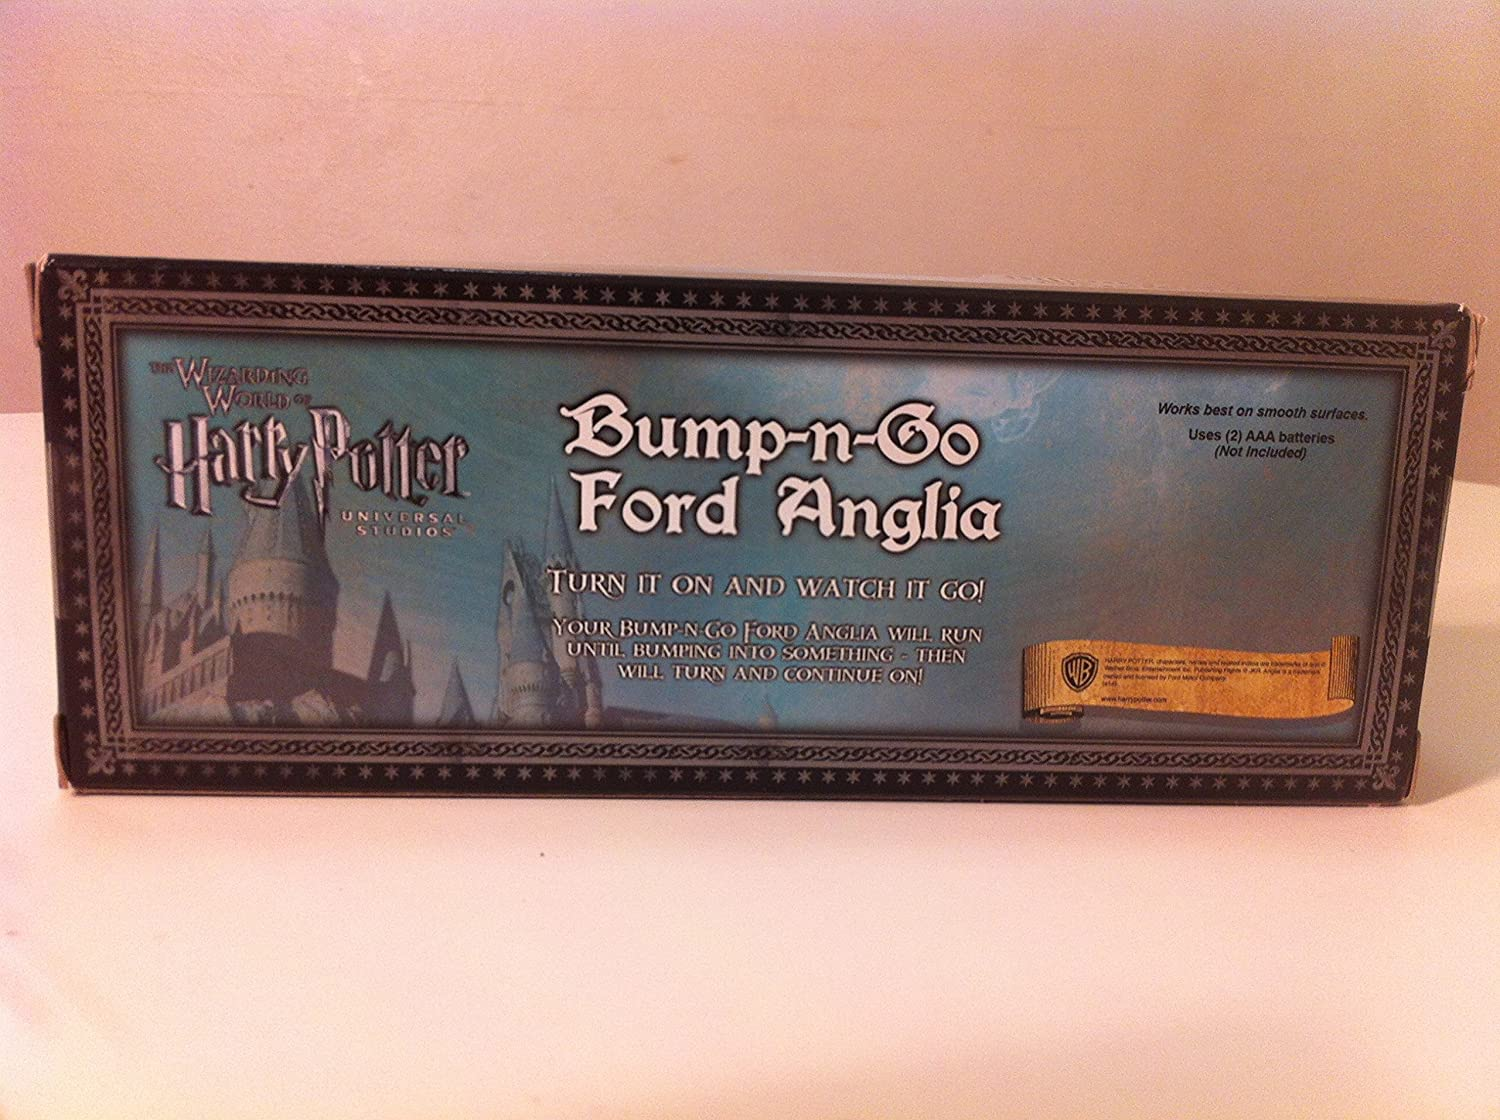 Buy Wizarding World of Harry Potter  Bump-N-Go Ford Anglia Battery Operated Toy Car Online at Low Prices in India - Amazon.in & Buy Wizarding World of Harry Potter : Bump-N-Go Ford Anglia ... markmcfarlin.com